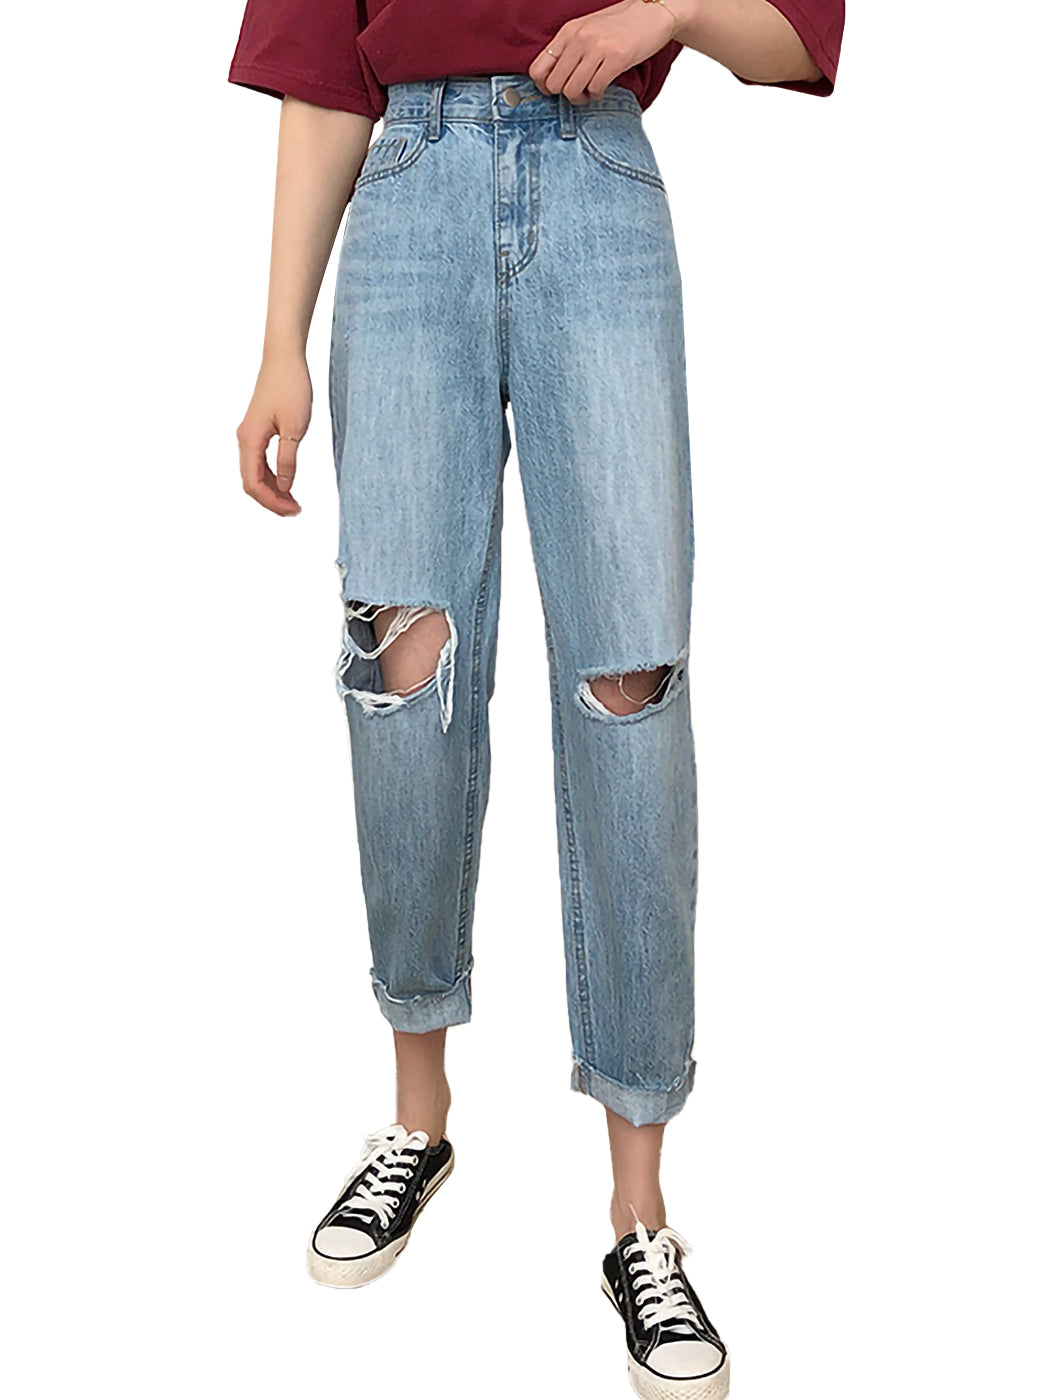 High Waist Ripped Boyfriend Jeans